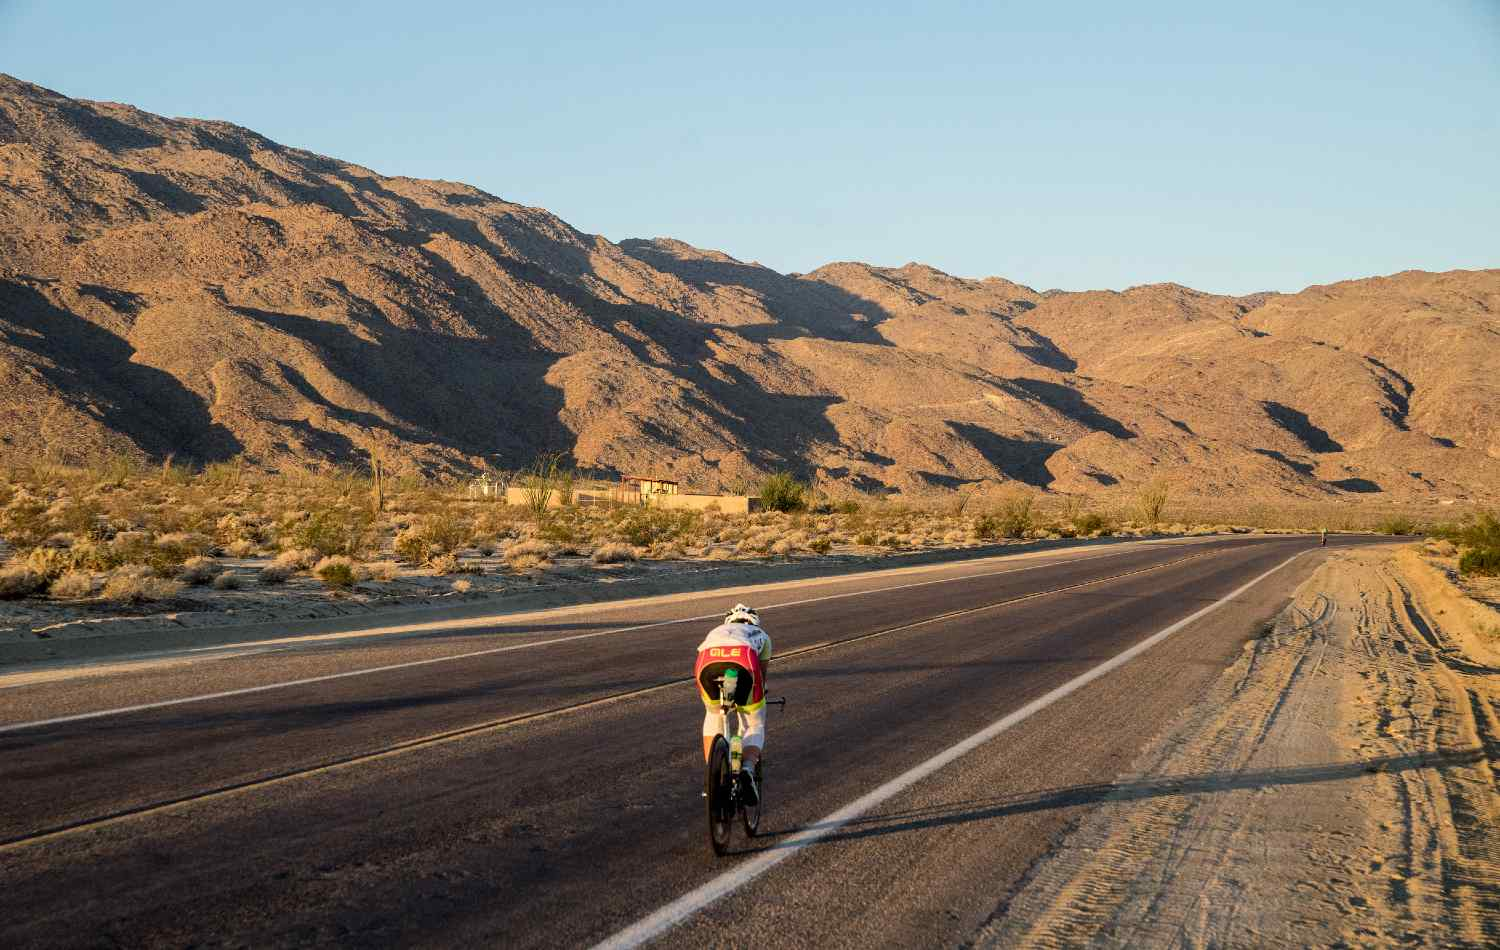 A person cycling on a road surrounded by mountains